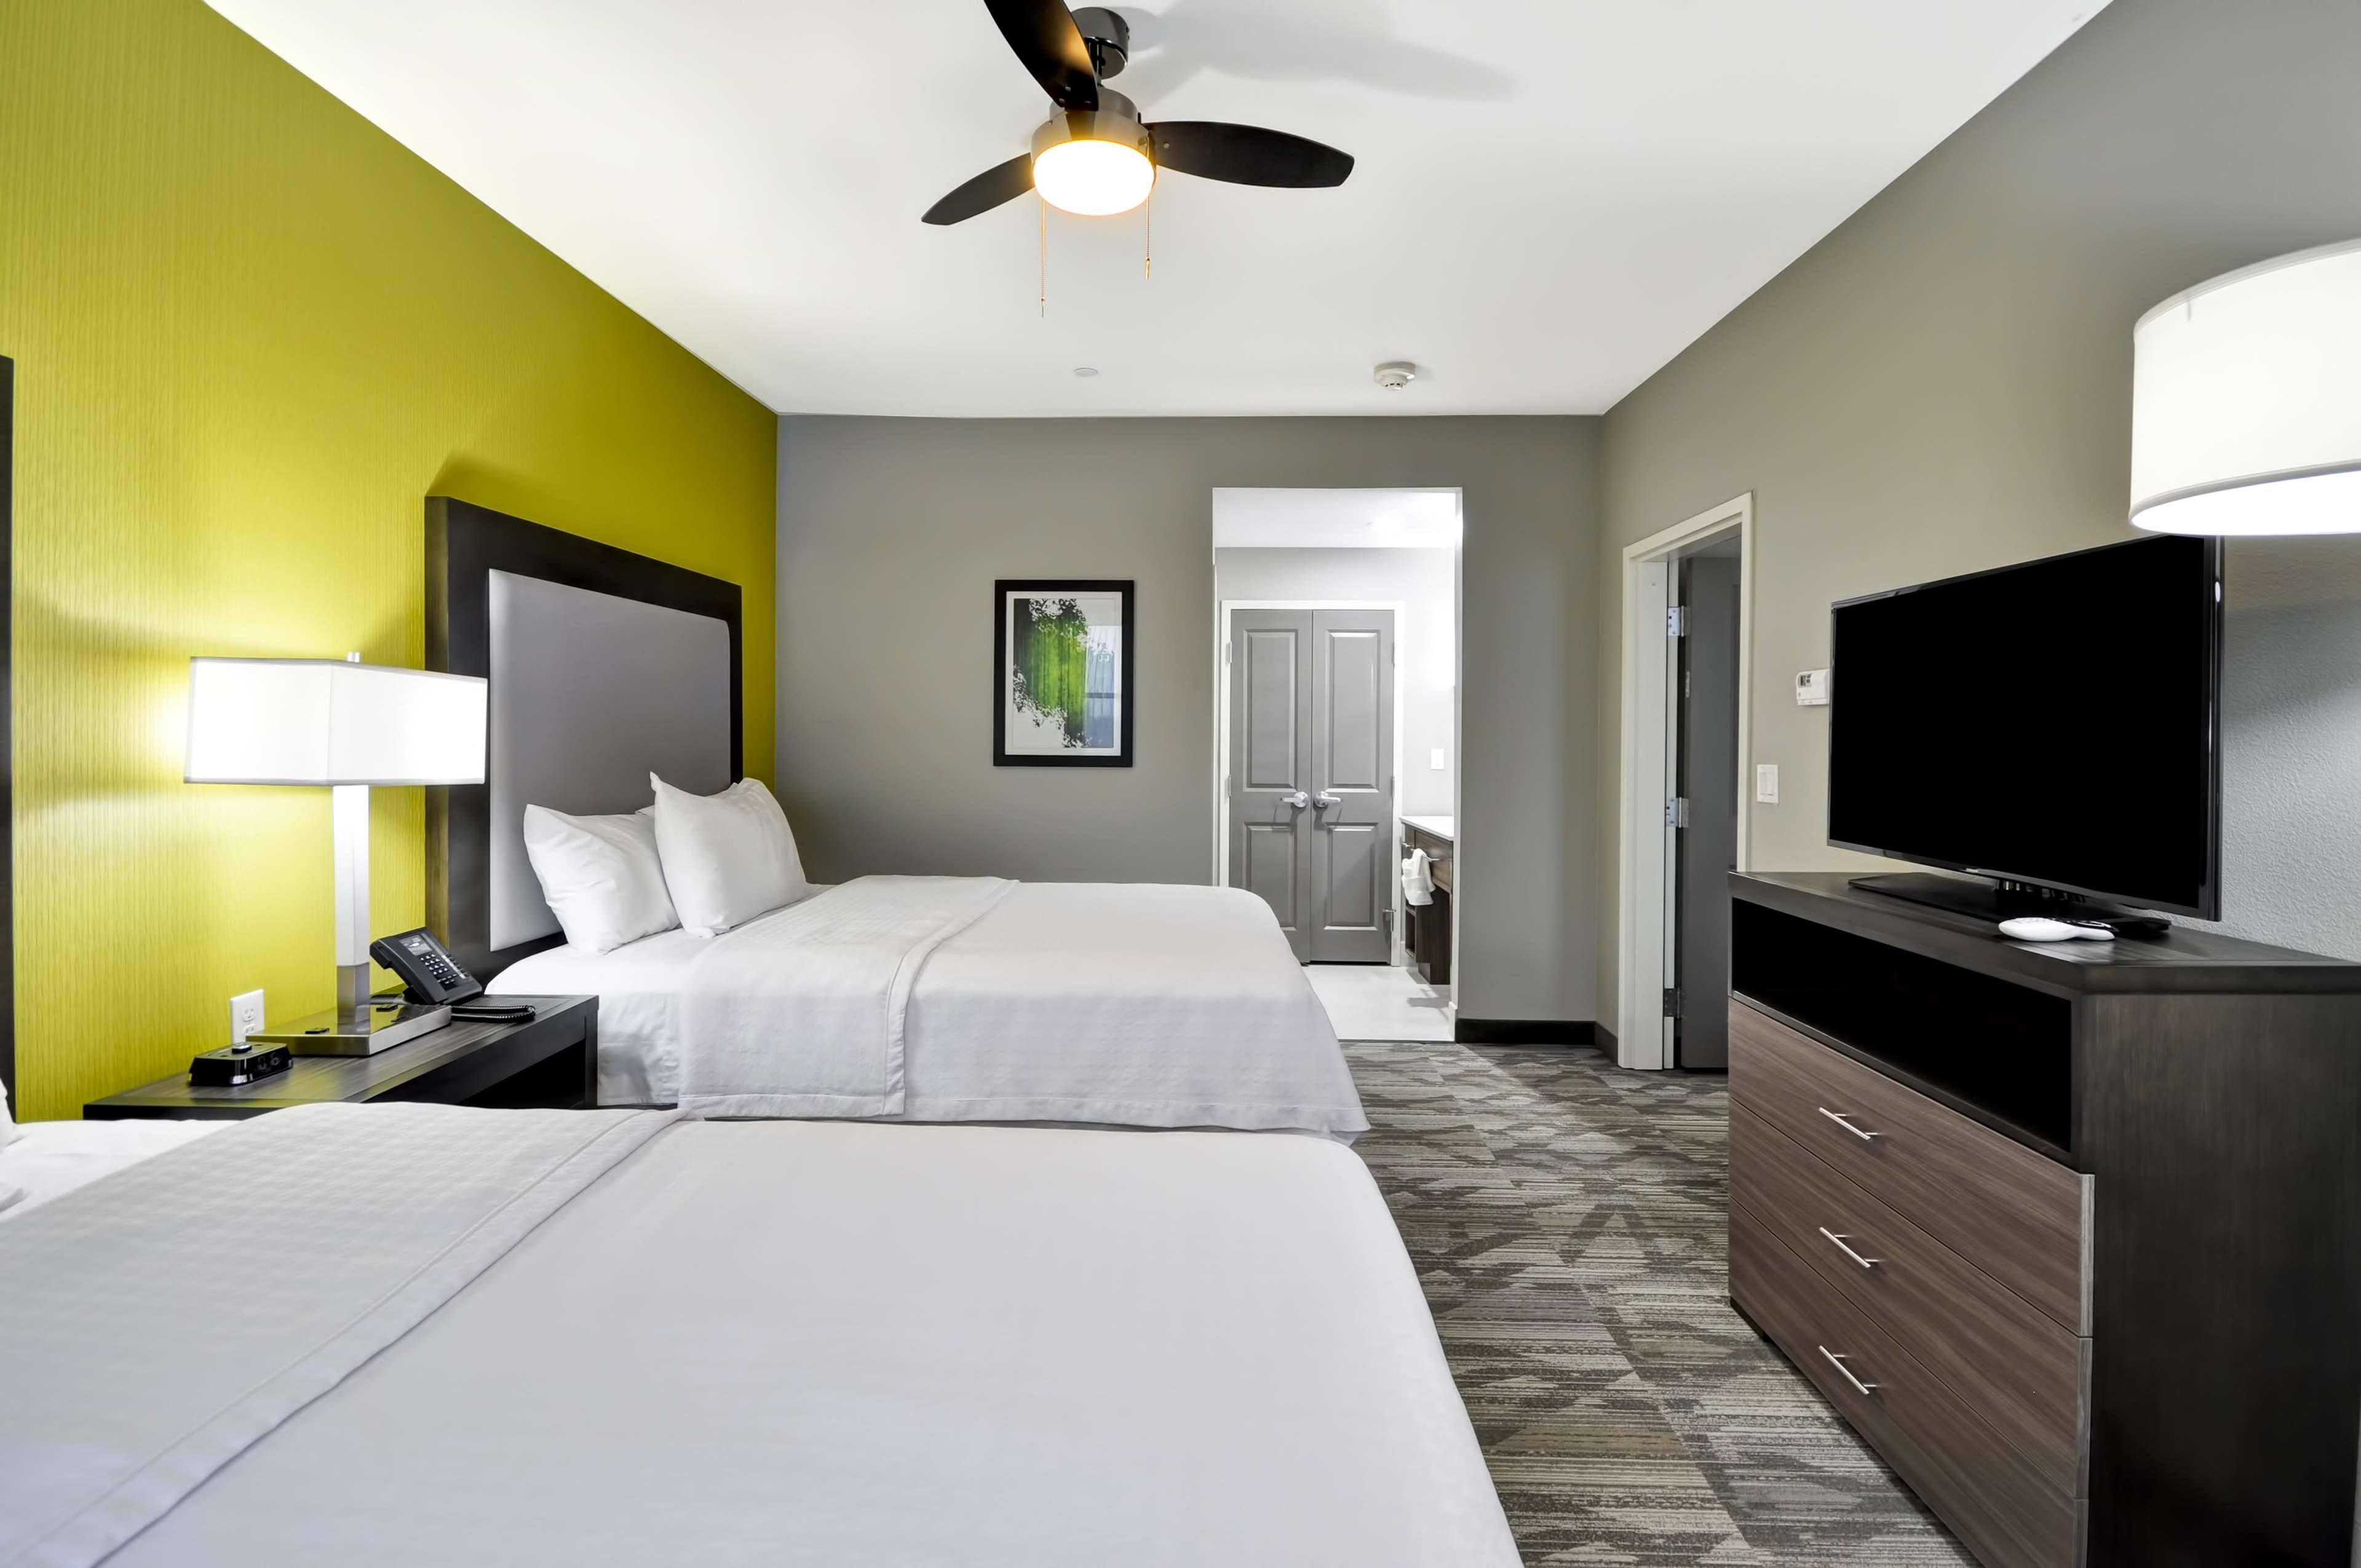 Homewood Suites by Hilton Tyler image 21